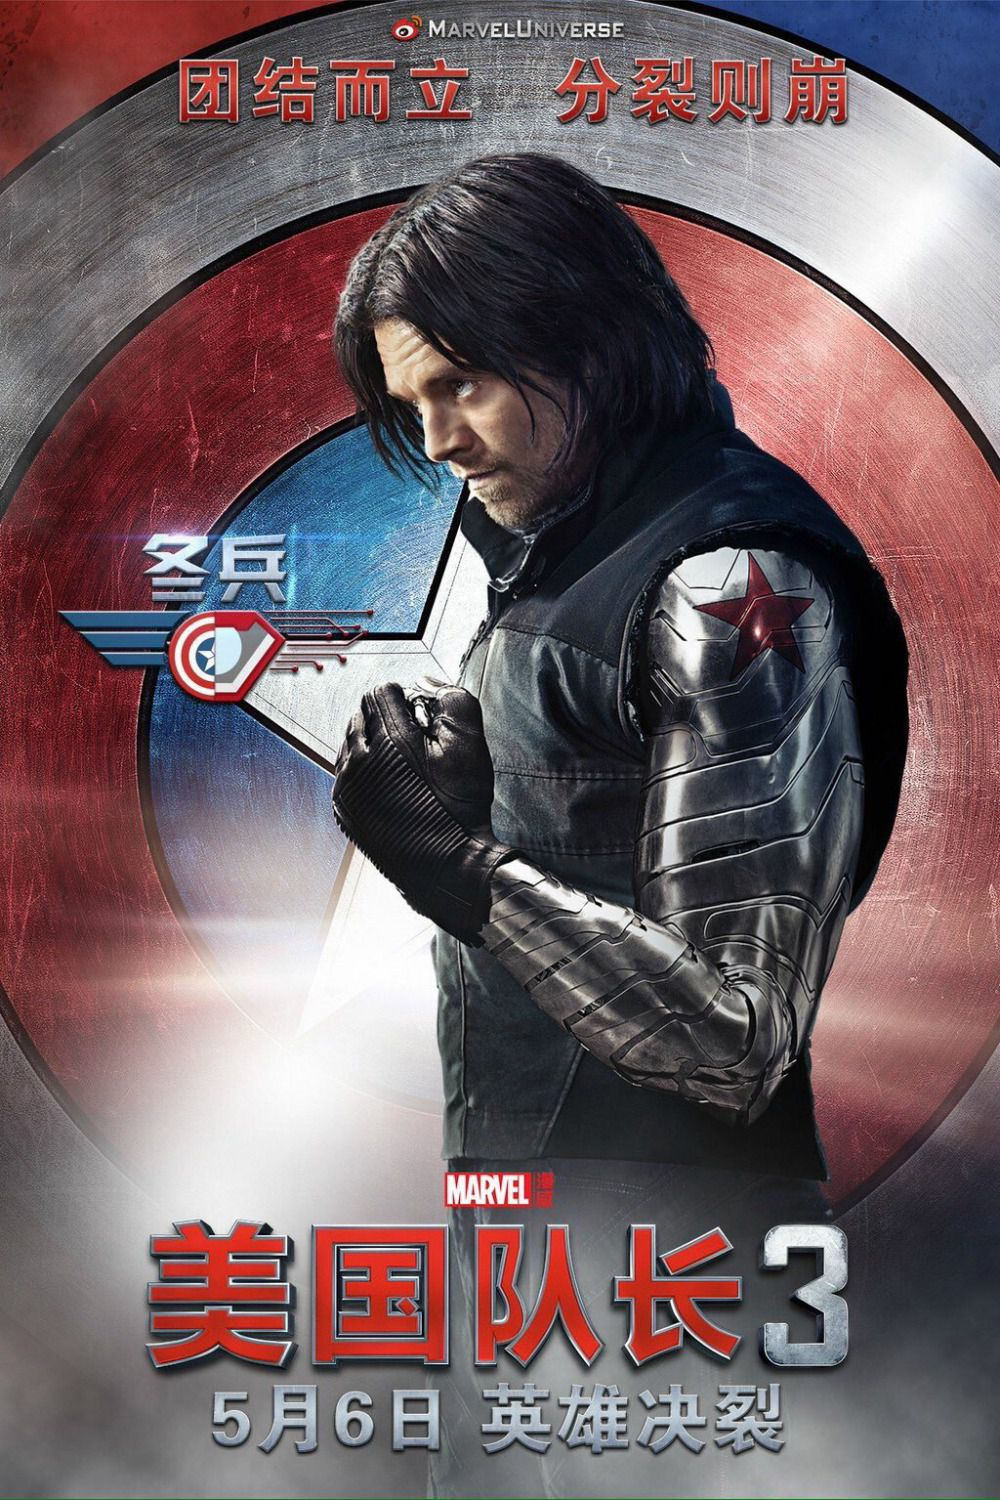 Captain America 3 - Civil War - Capitan America - Winter Soldier (Sebastian Stan) - iron arm